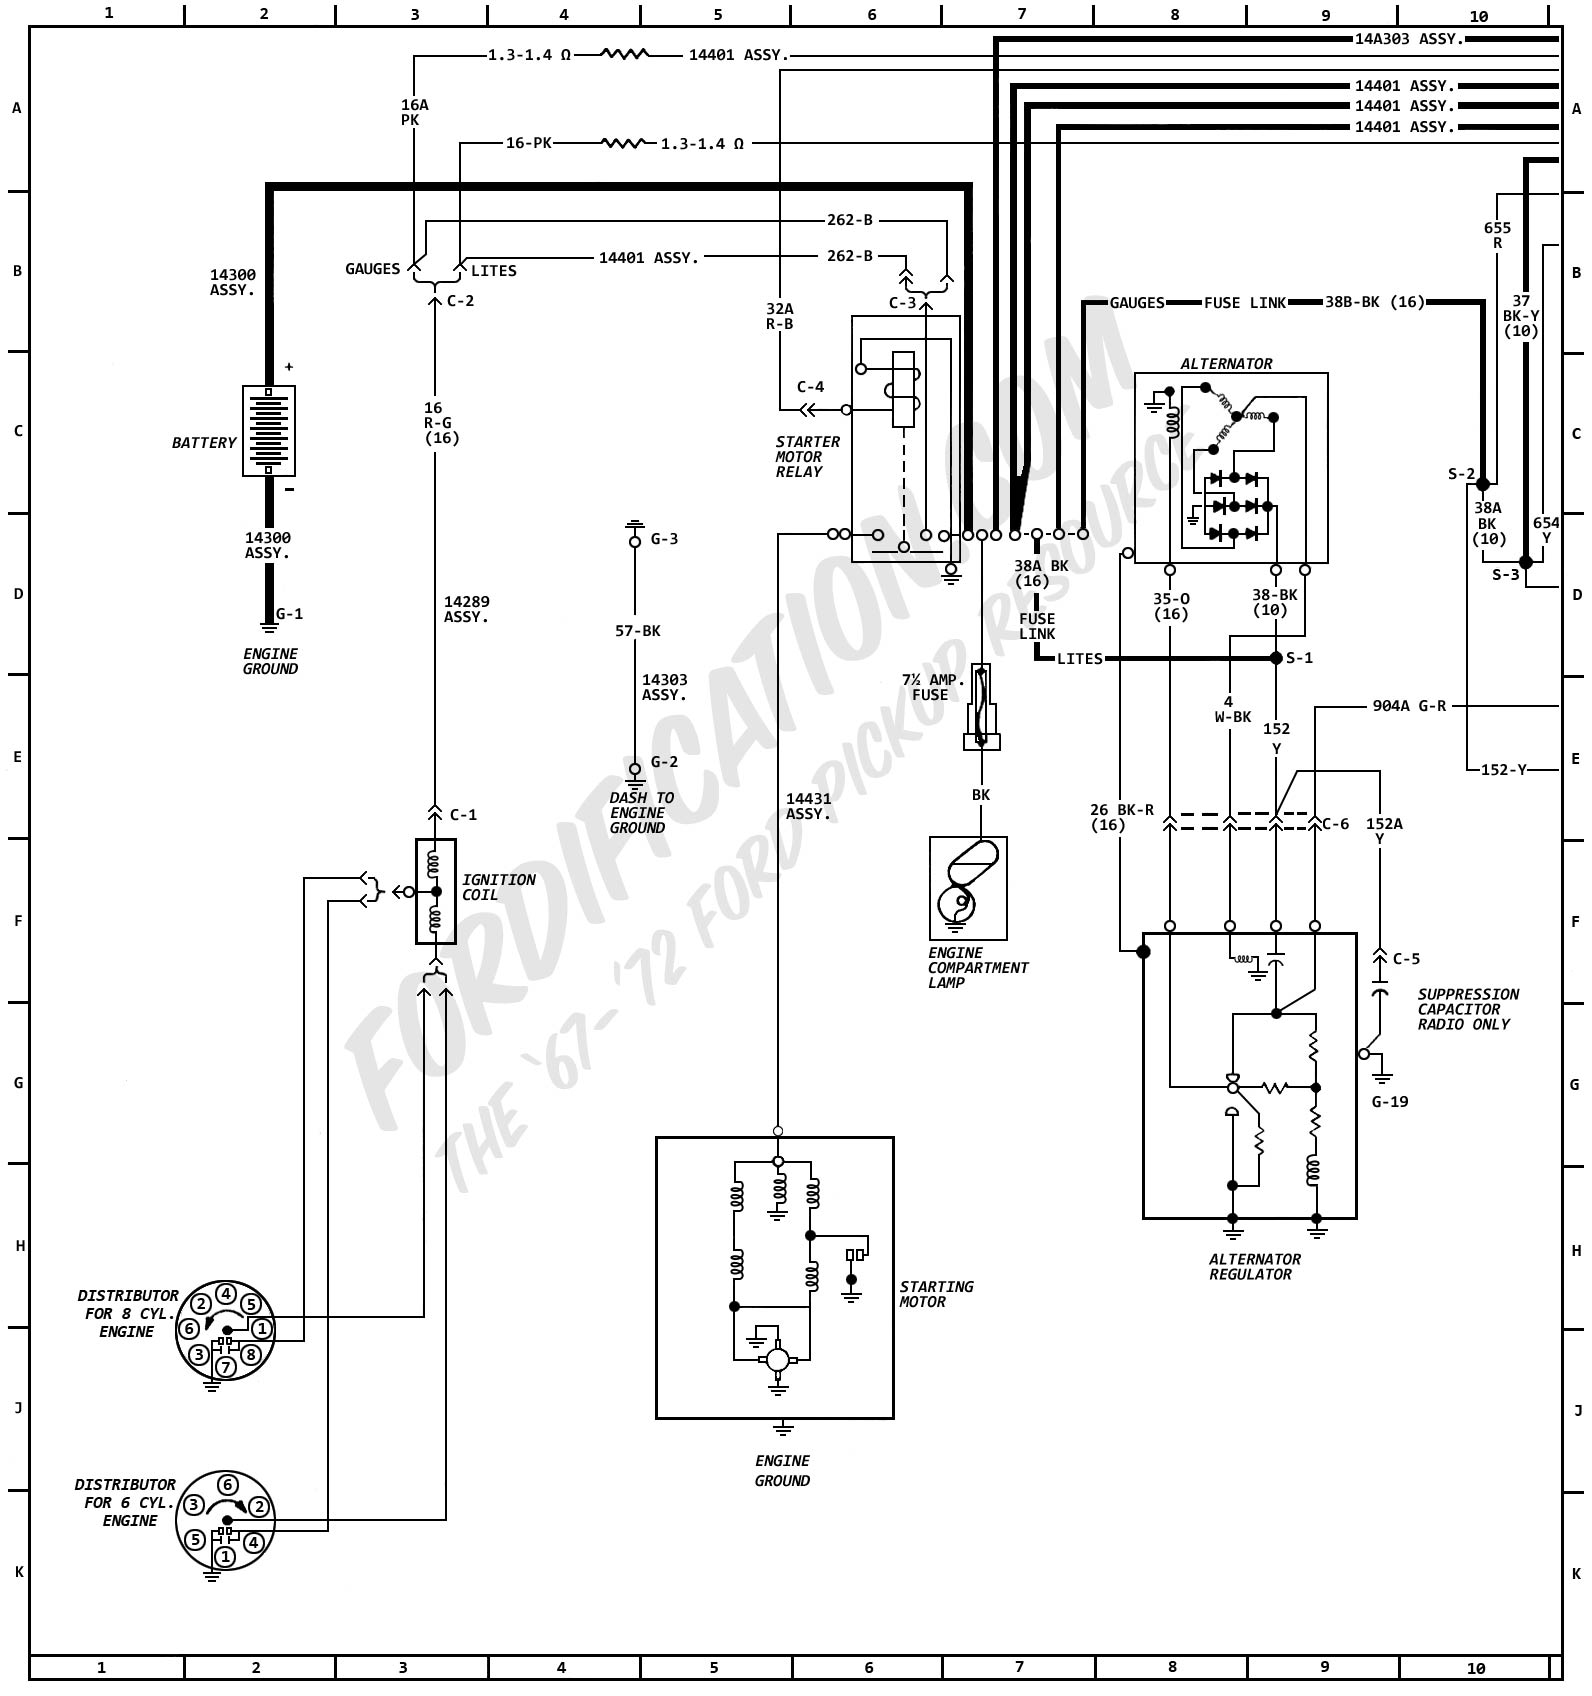 1972MasterWiring_01 1972 ford truck wiring diagrams fordification com 1971 ford f100 wiring diagram at webbmarketing.co